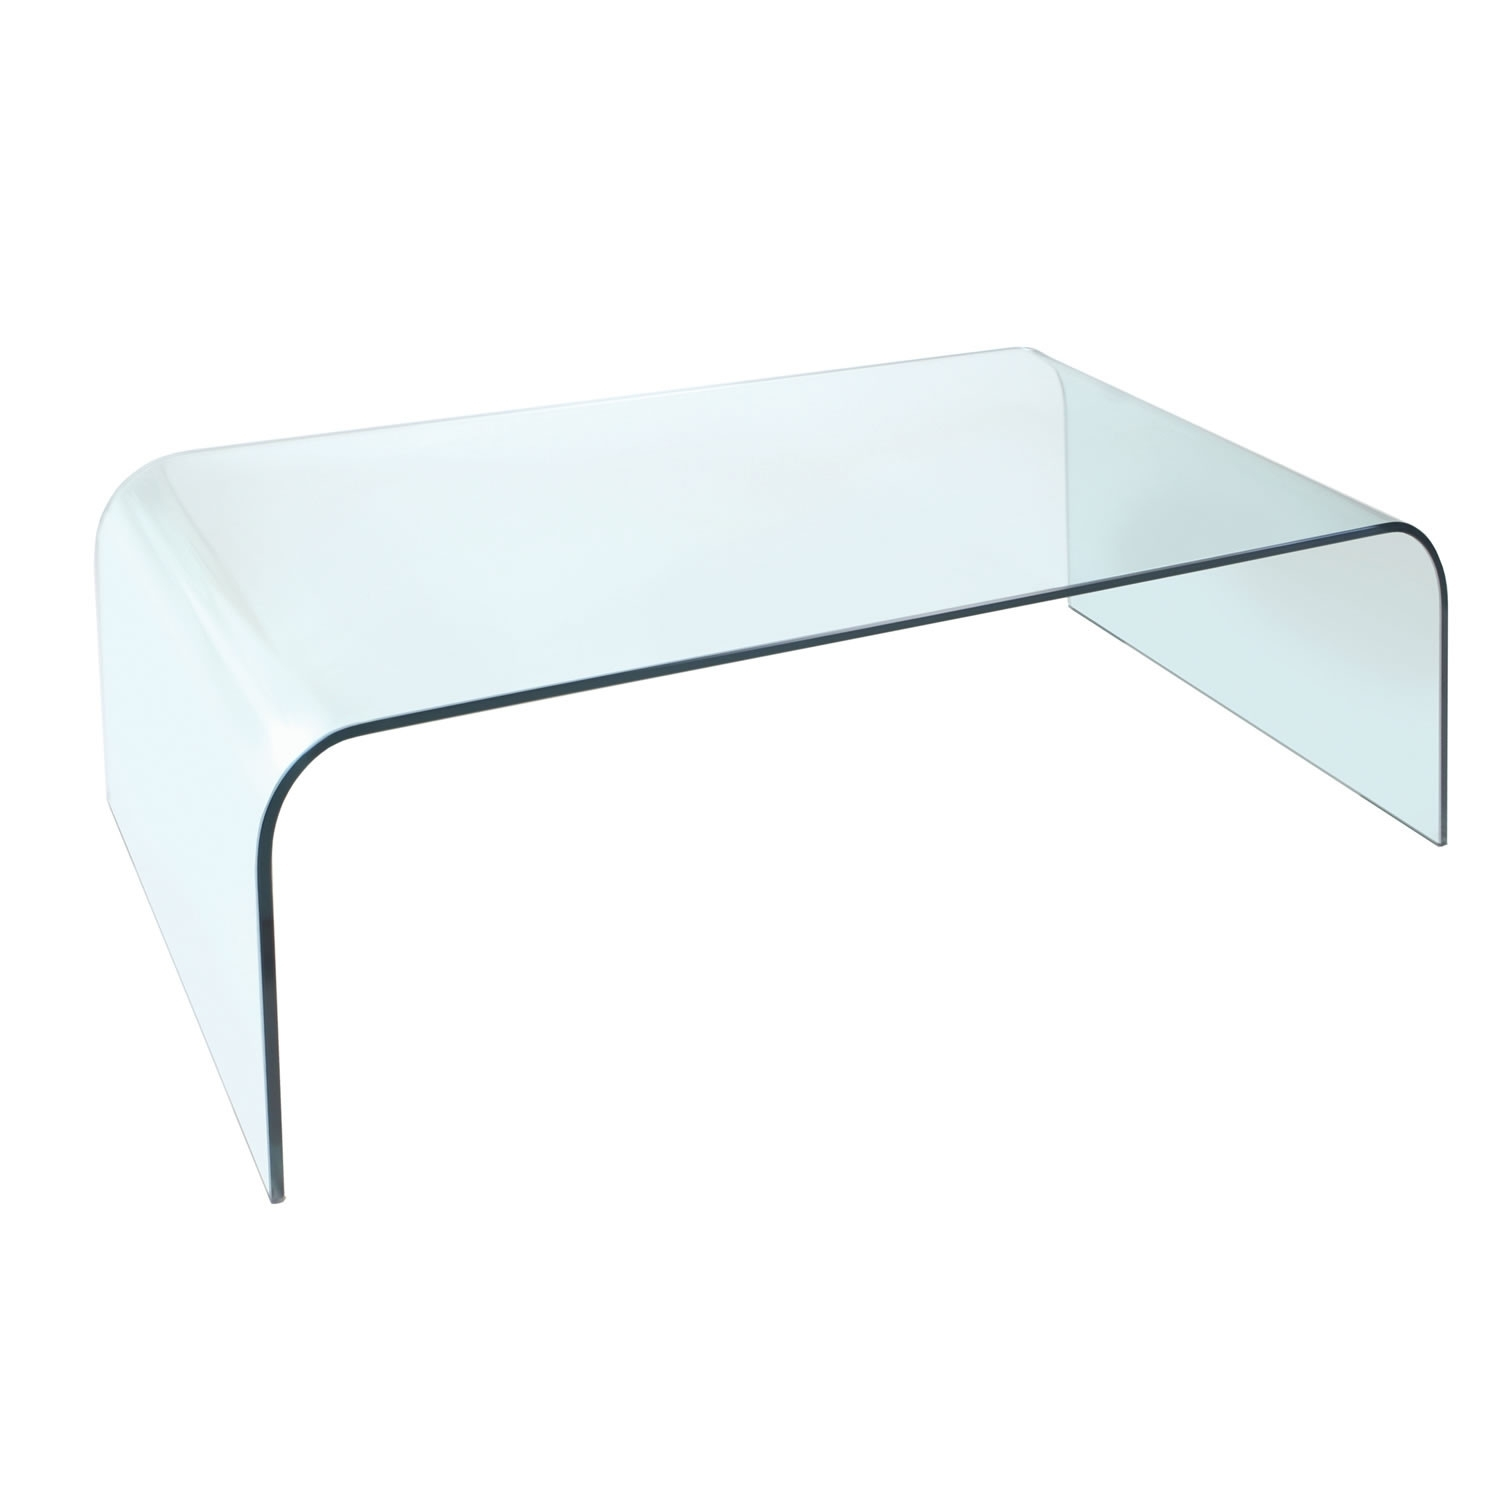 Acrylic Coffee Table For Sale Unique Oval Clear Glass Coffee Table regarding Modern Acrylic Coffee Tables (Image 4 of 30)